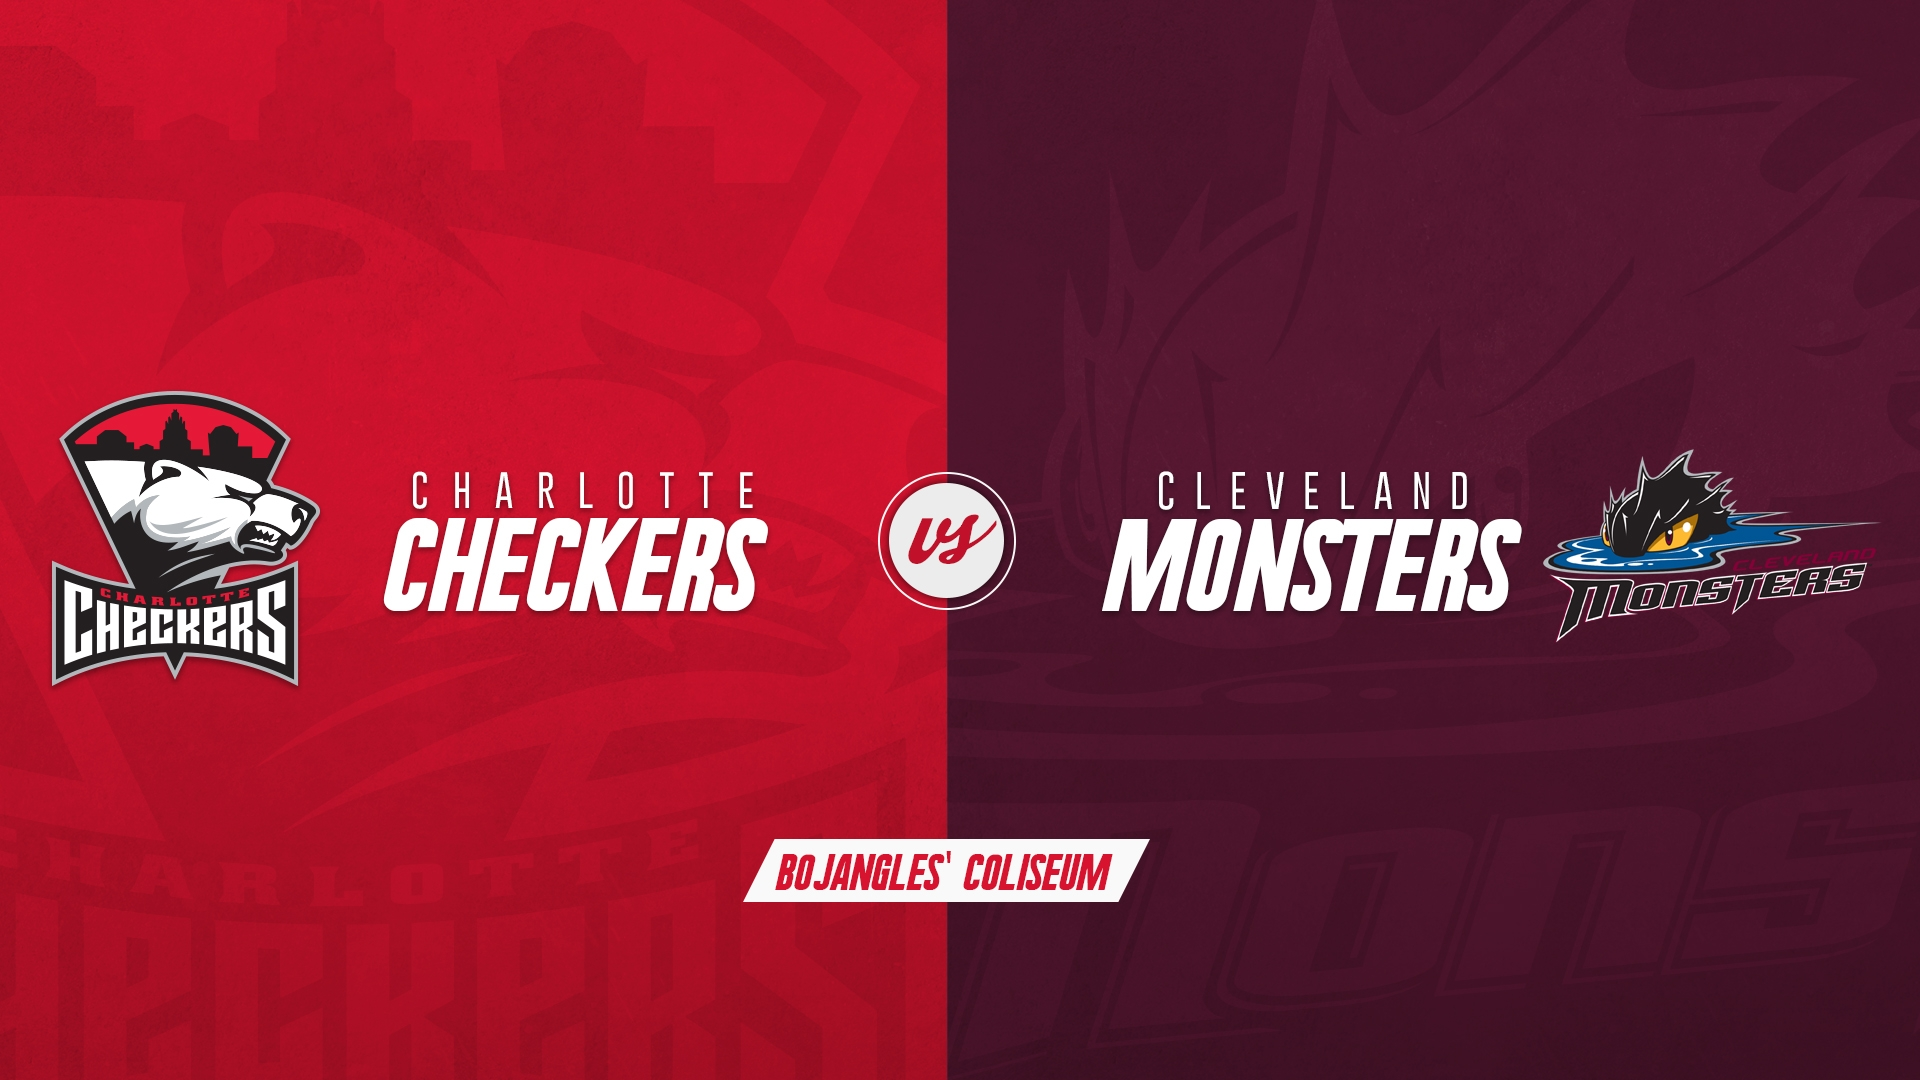 Charlotte Checkers vs. Cleveland Monsters